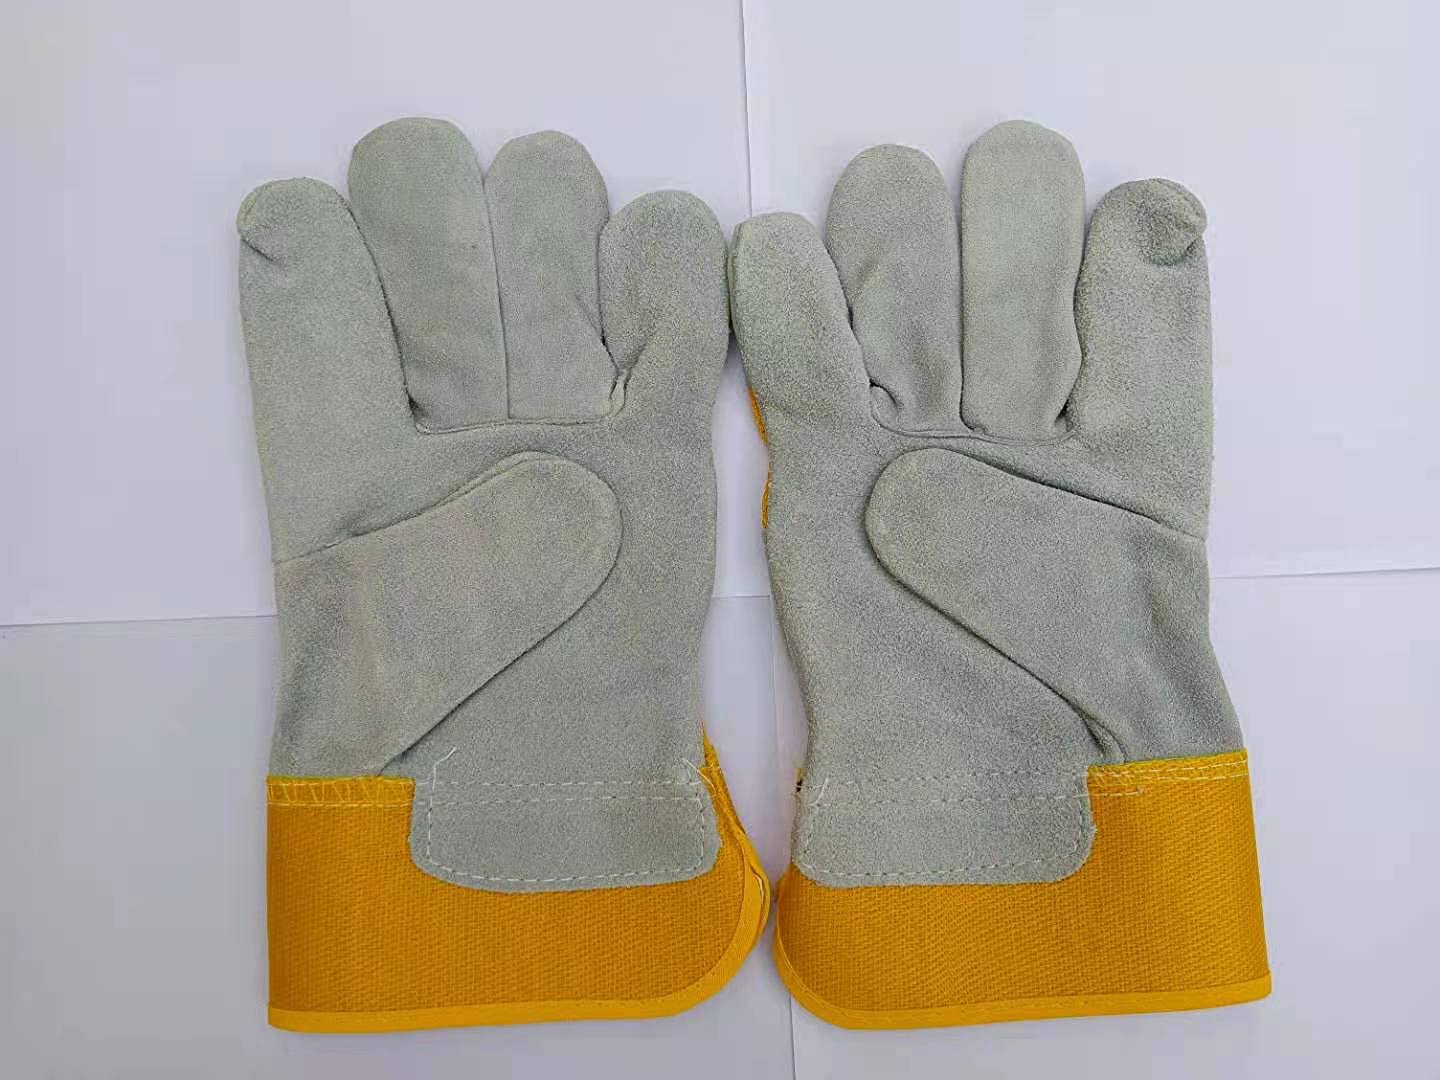 SZONTIME Wgy2401 Welder Gloves All stores are sold Short Work Glov Leather Sleeve Ranking TOP15